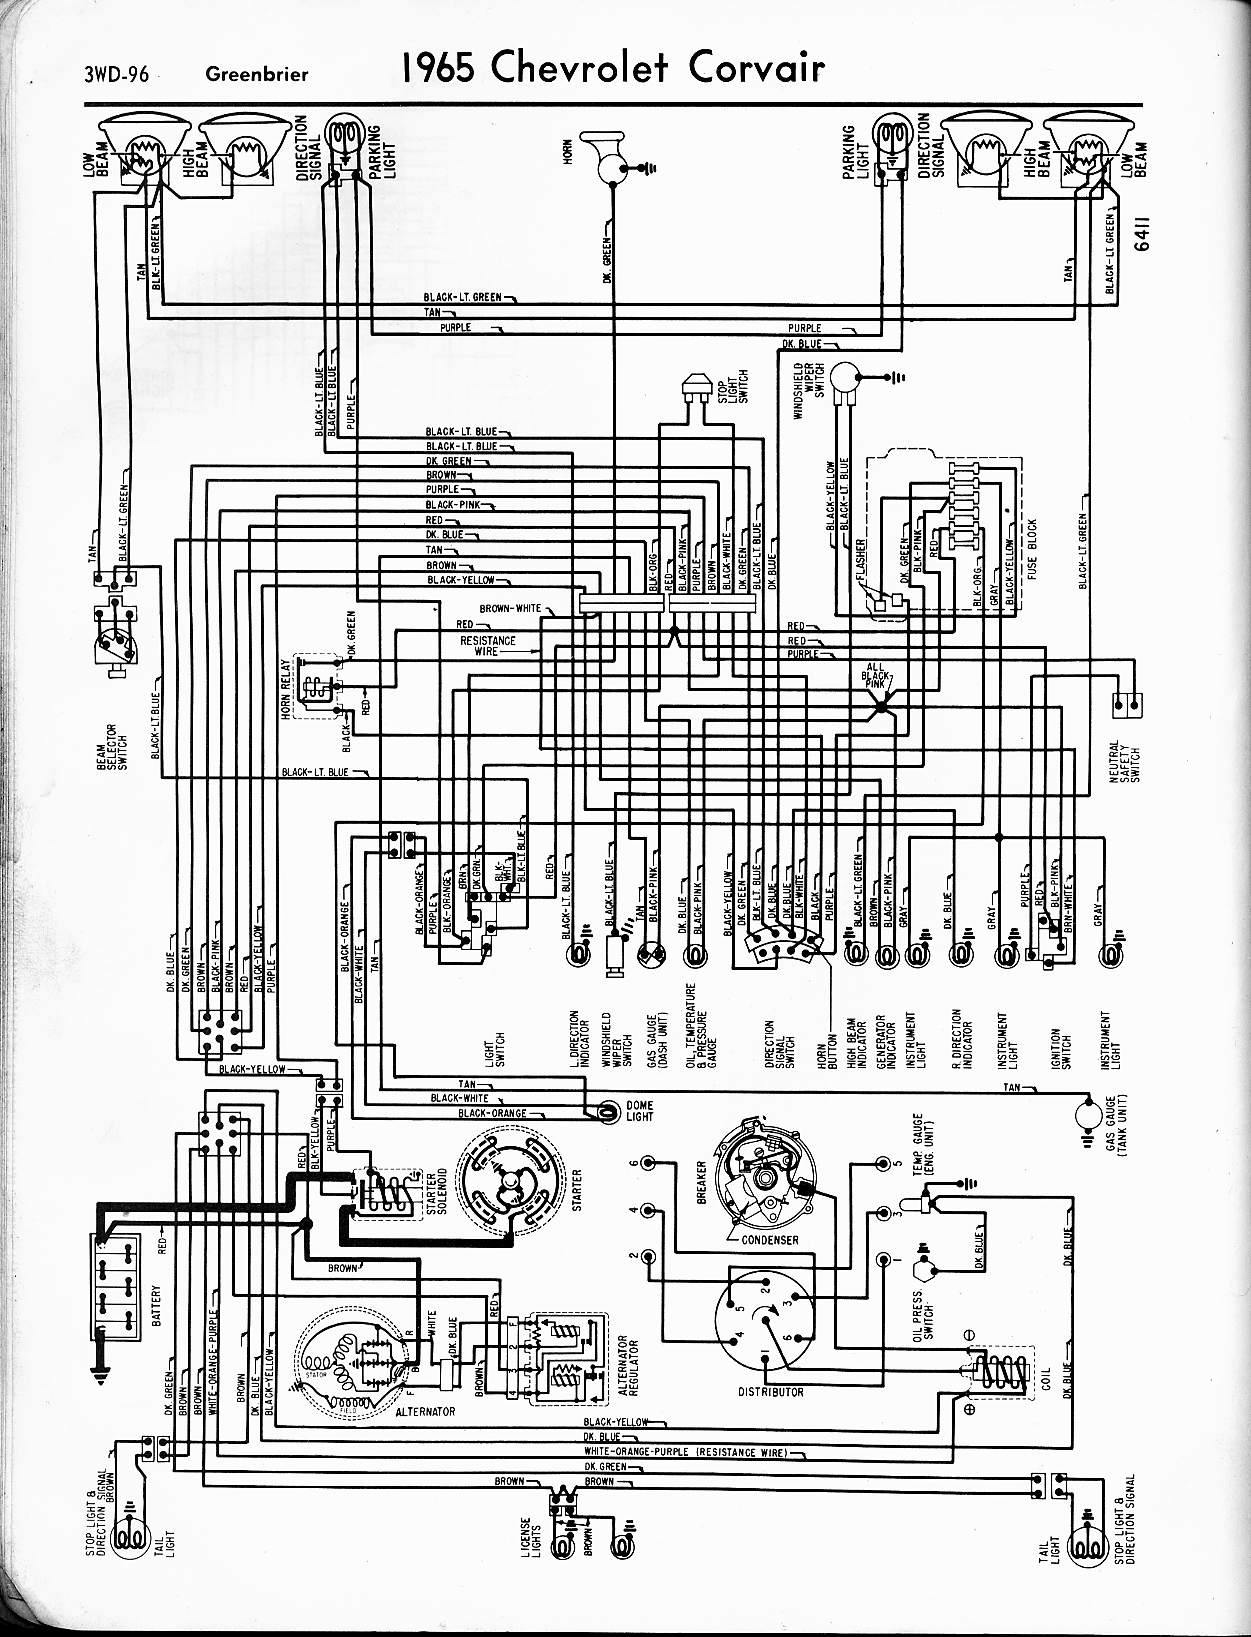 2001 Dodge Intrepid Alternator Wiring Diagram Wiring Diagram Photos